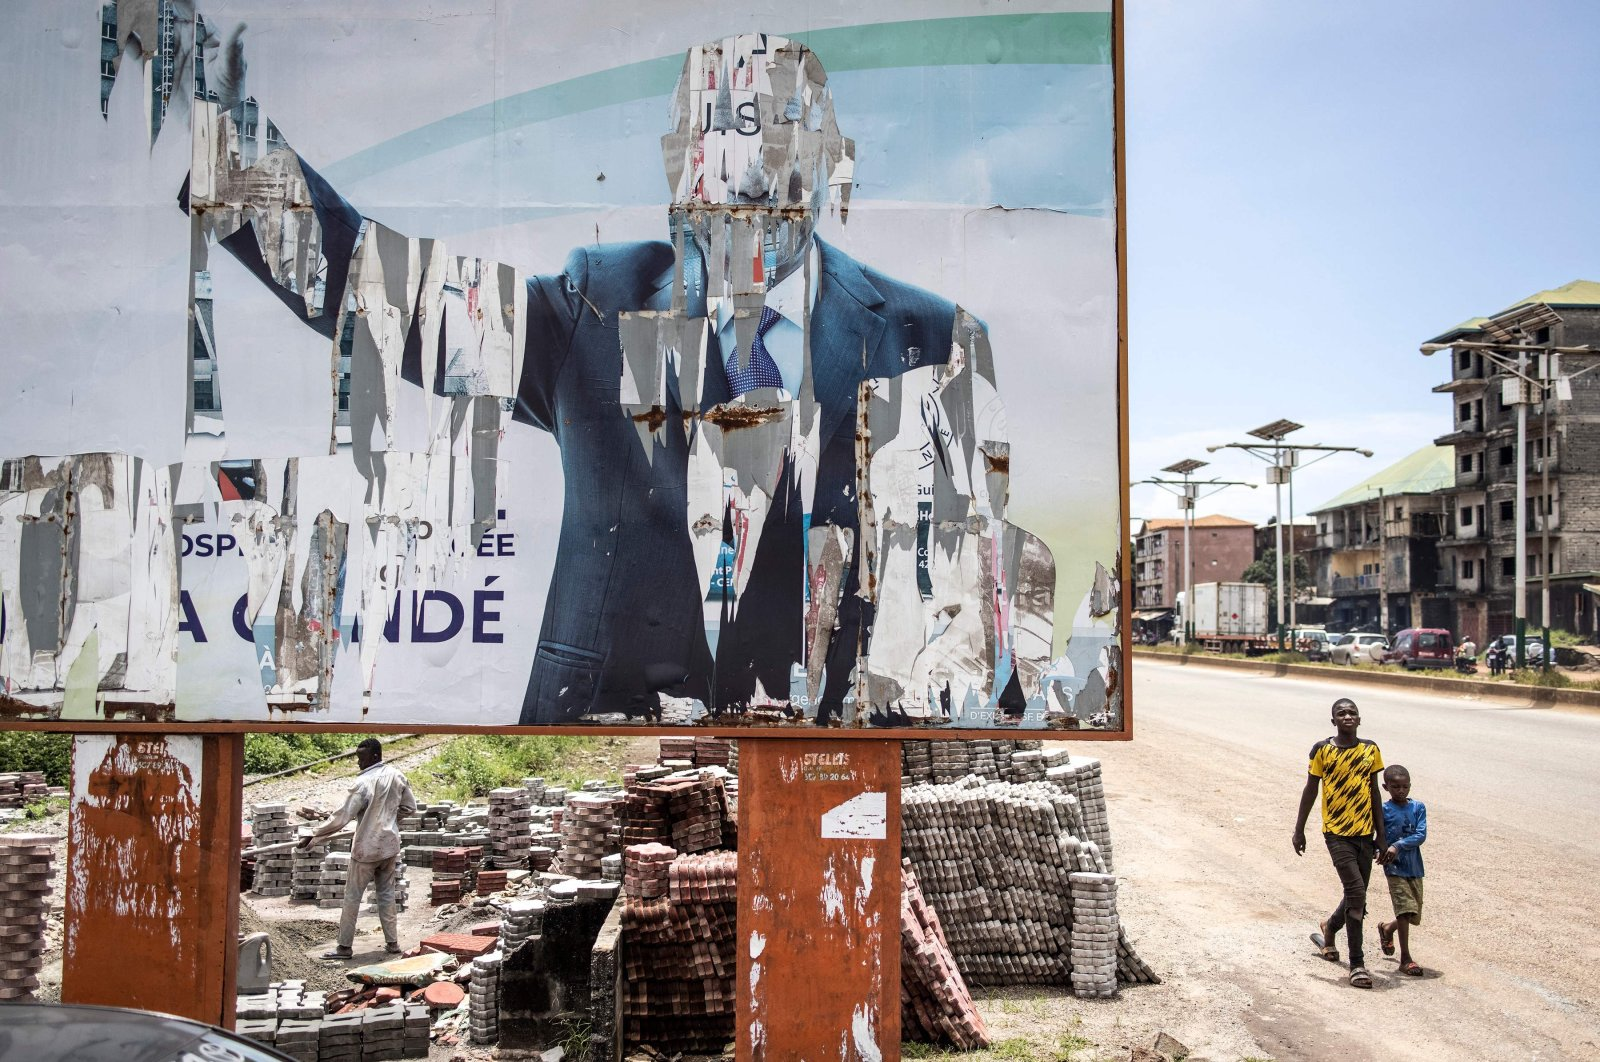 Two young boys walk past a torn billboard of the former president of Guinea, Alpha Conde, in Conakry, Guinea, Sept. 16, 2021. (AFP Photo)